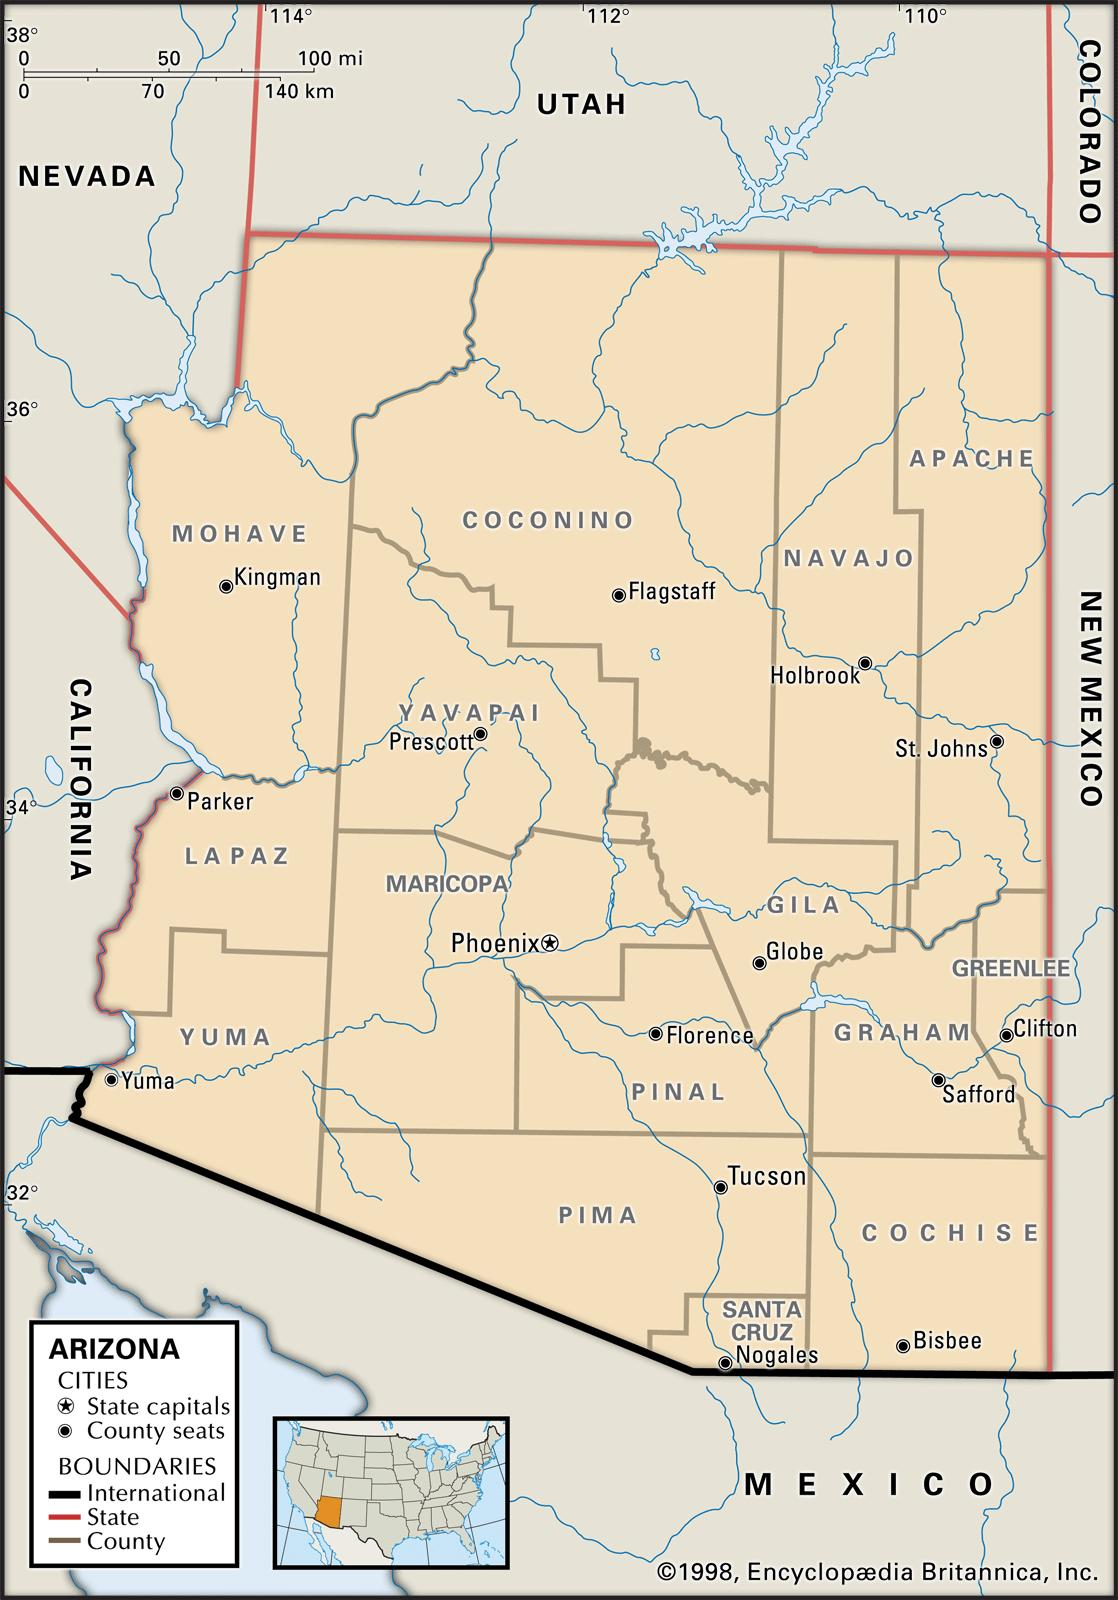 image regarding Printable Map of Tucson Az referred to as Country and County Maps of Arizona